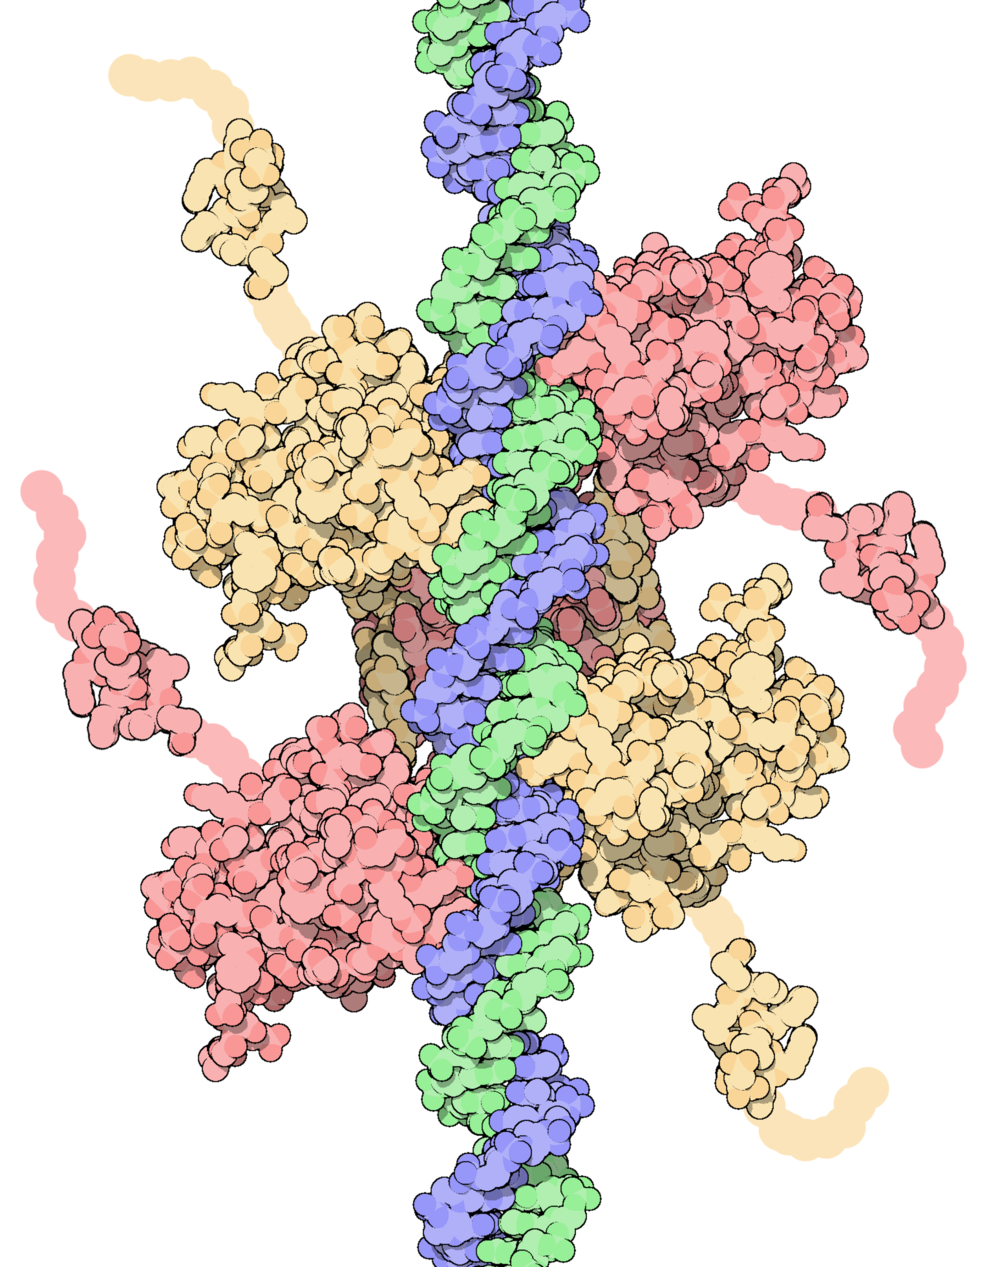 Model of p53 tumor suppressor bound to DNA.    RCSB PDB, July 2002, David Goodsell   .